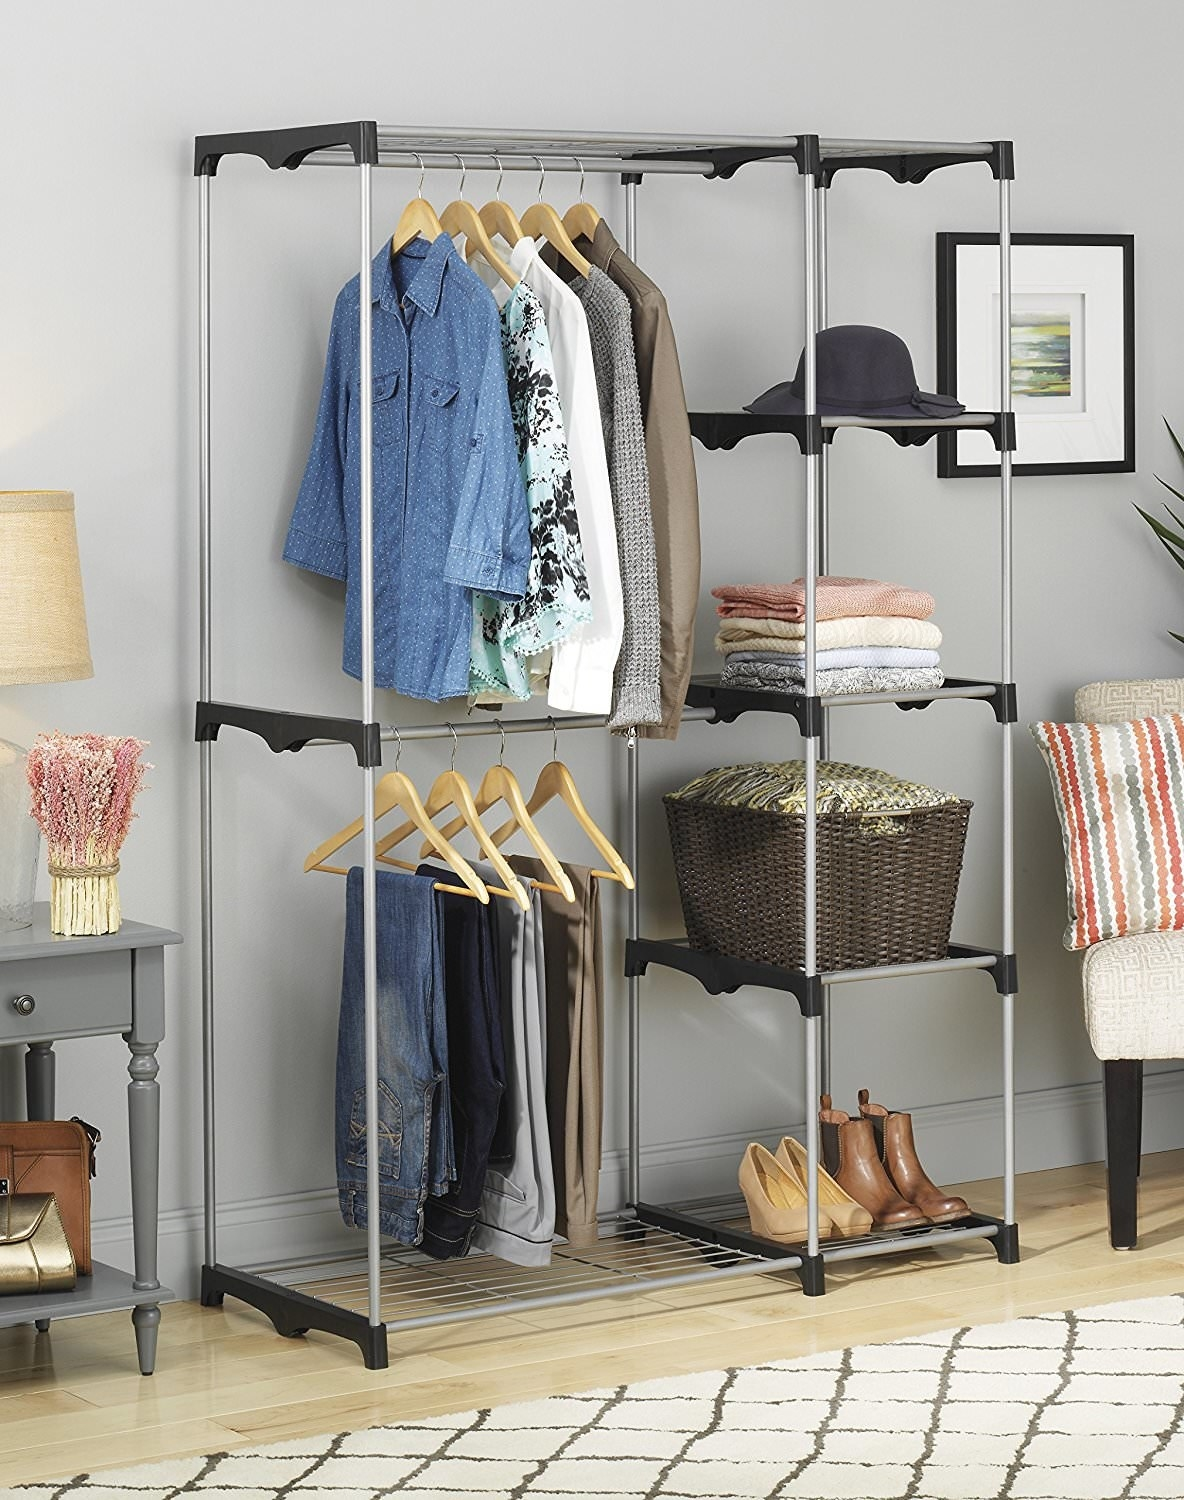 The closet organizer with clothing